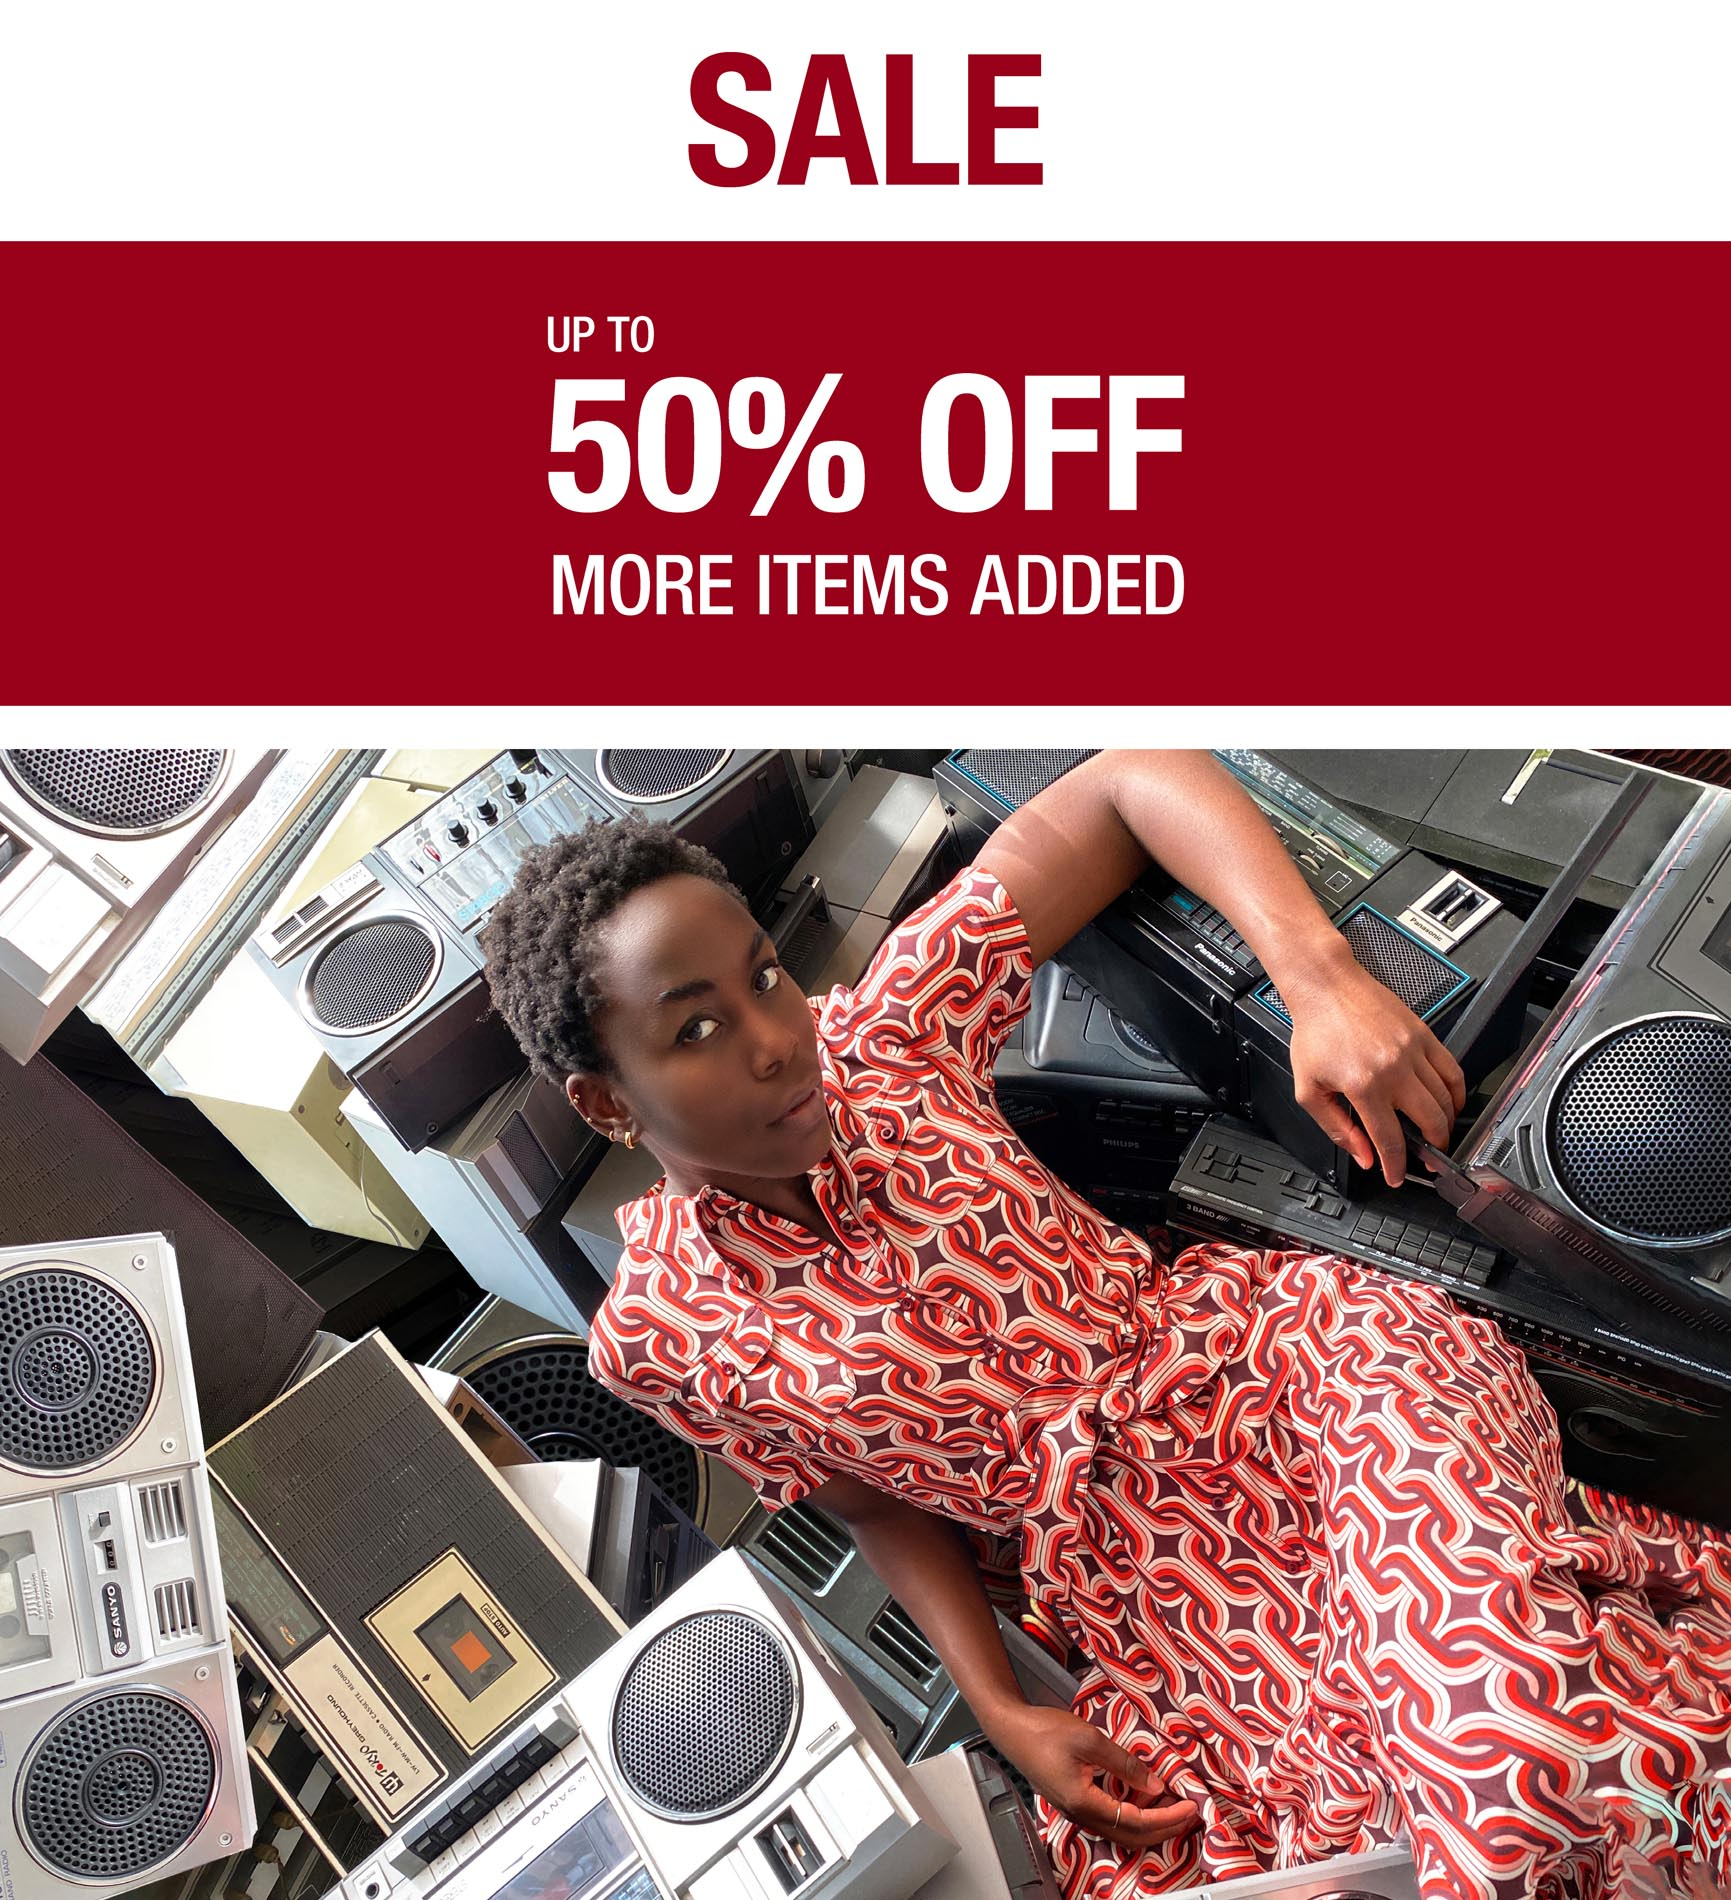 MORE up to 50% off